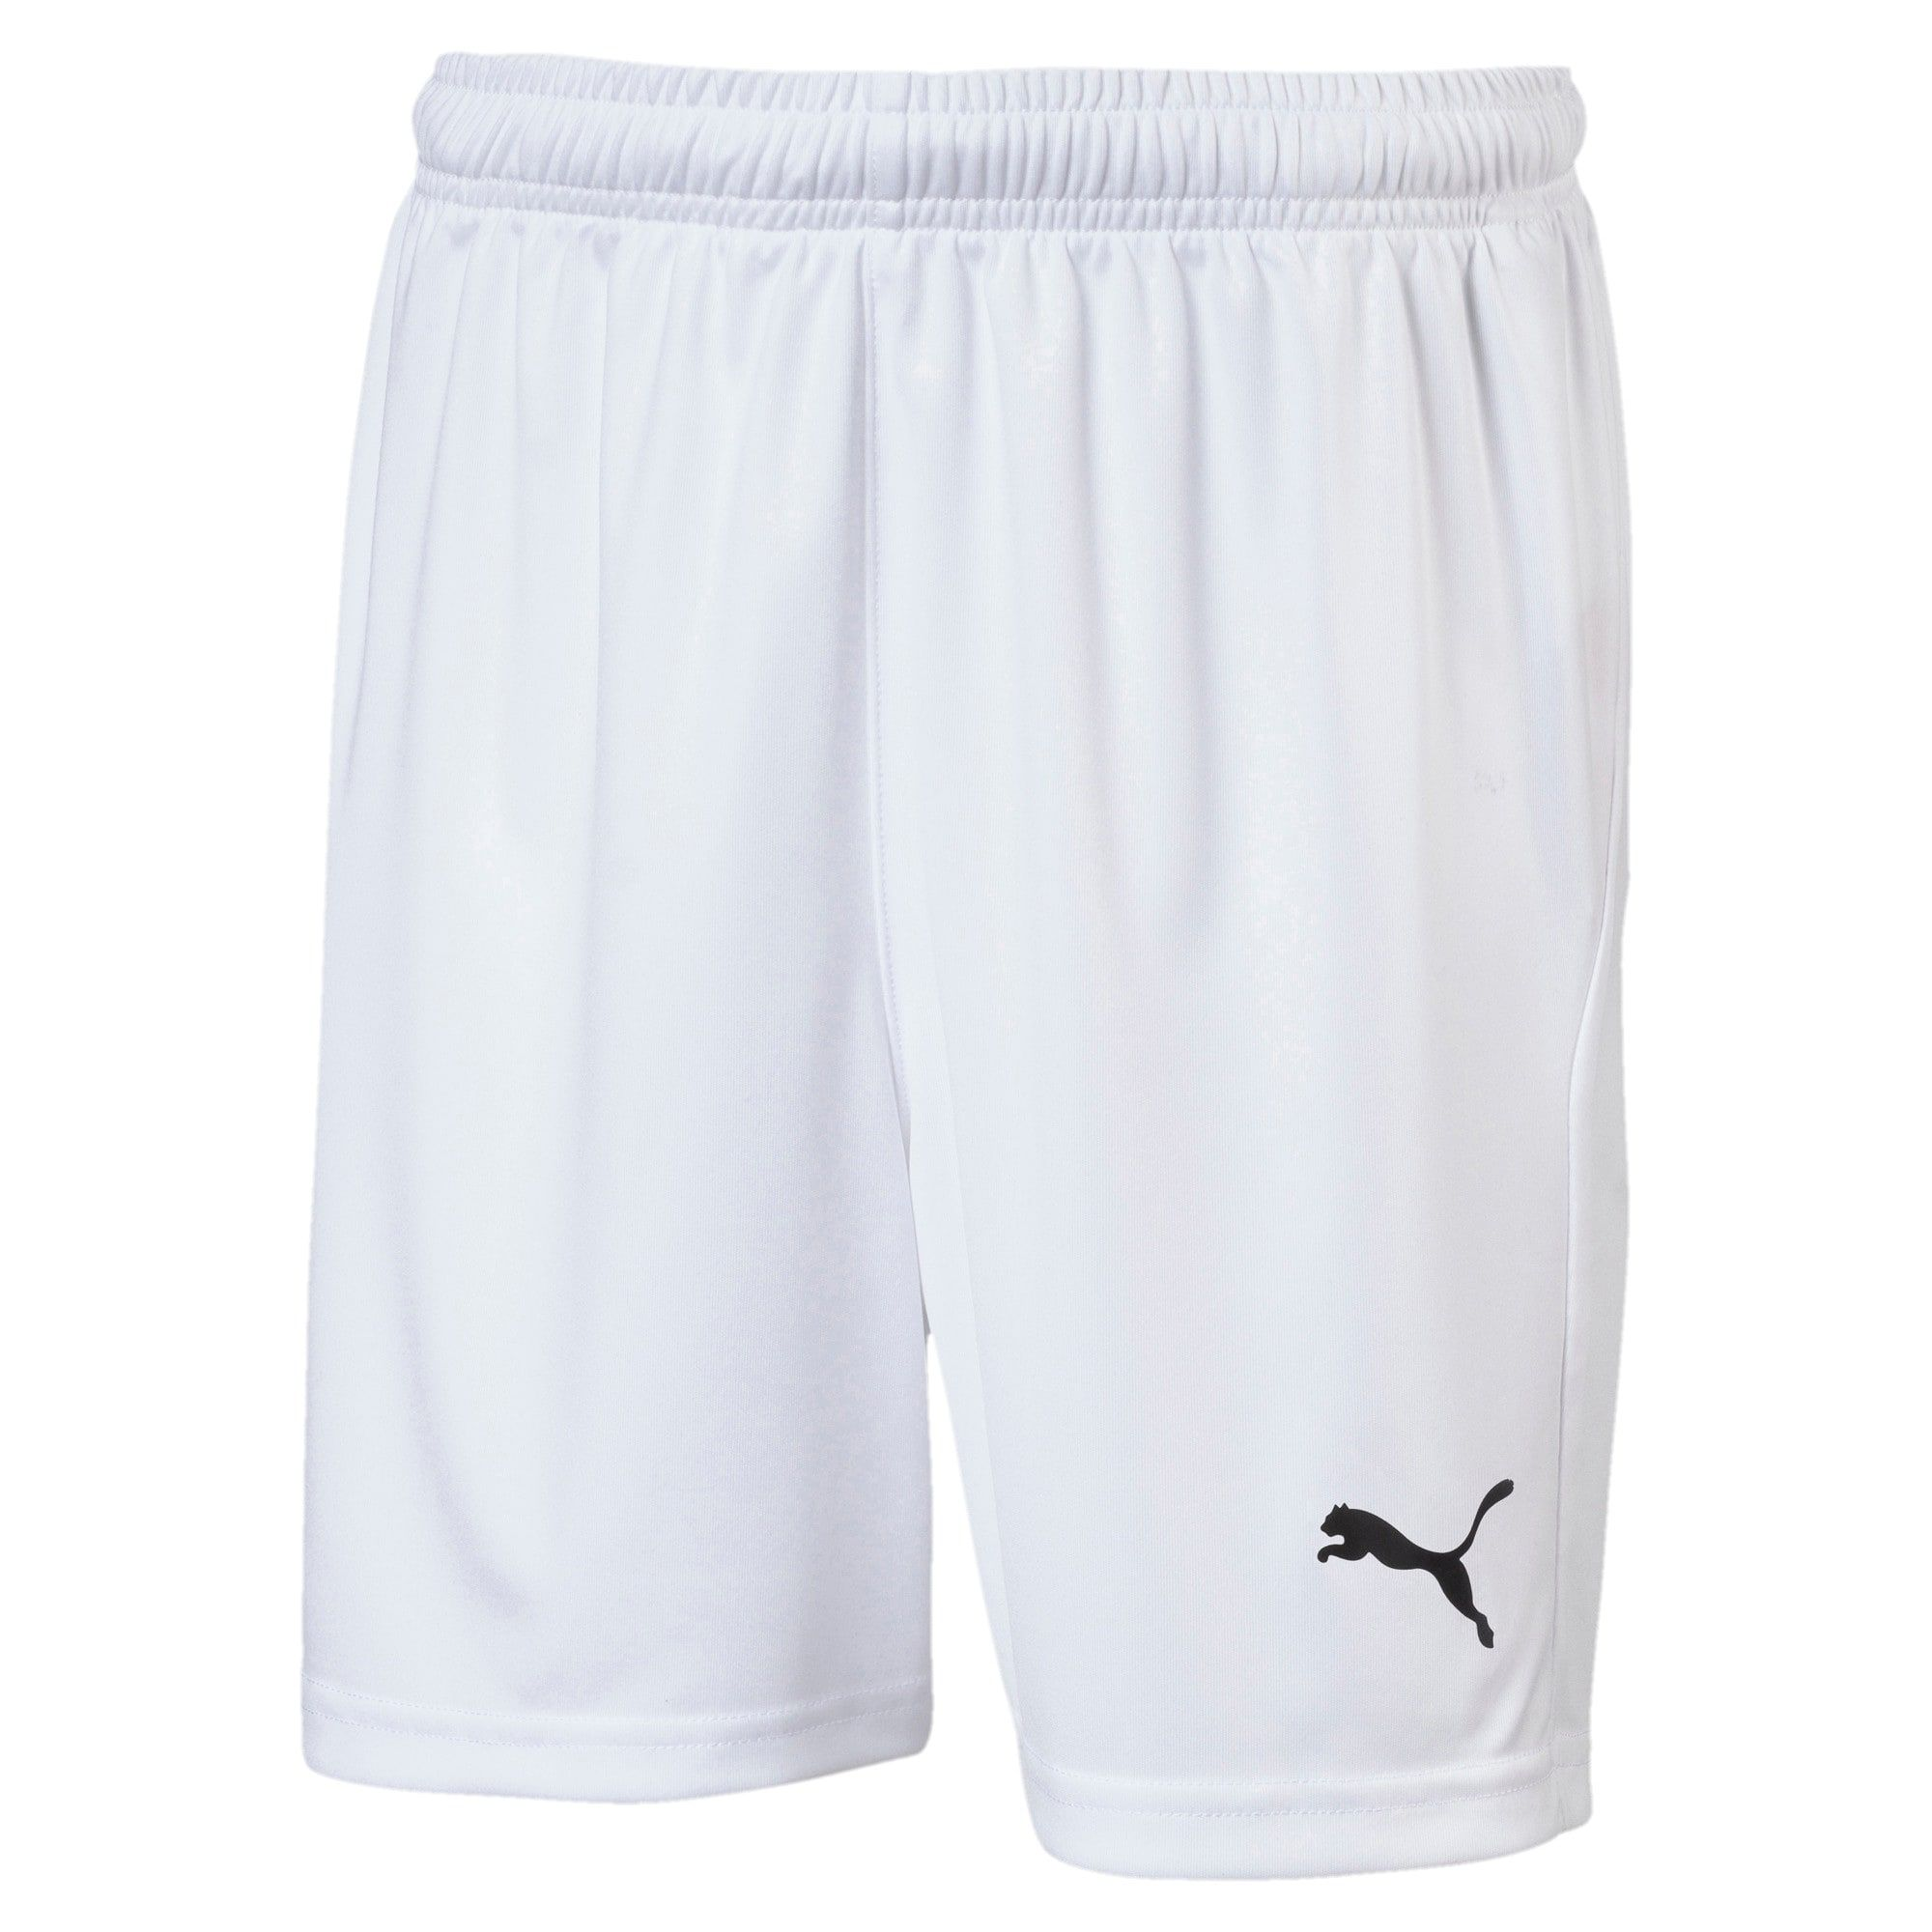 Photo of PUMA Liga Core Junior Football Shorts, White/Black, size 7-8 Youth, Accessories